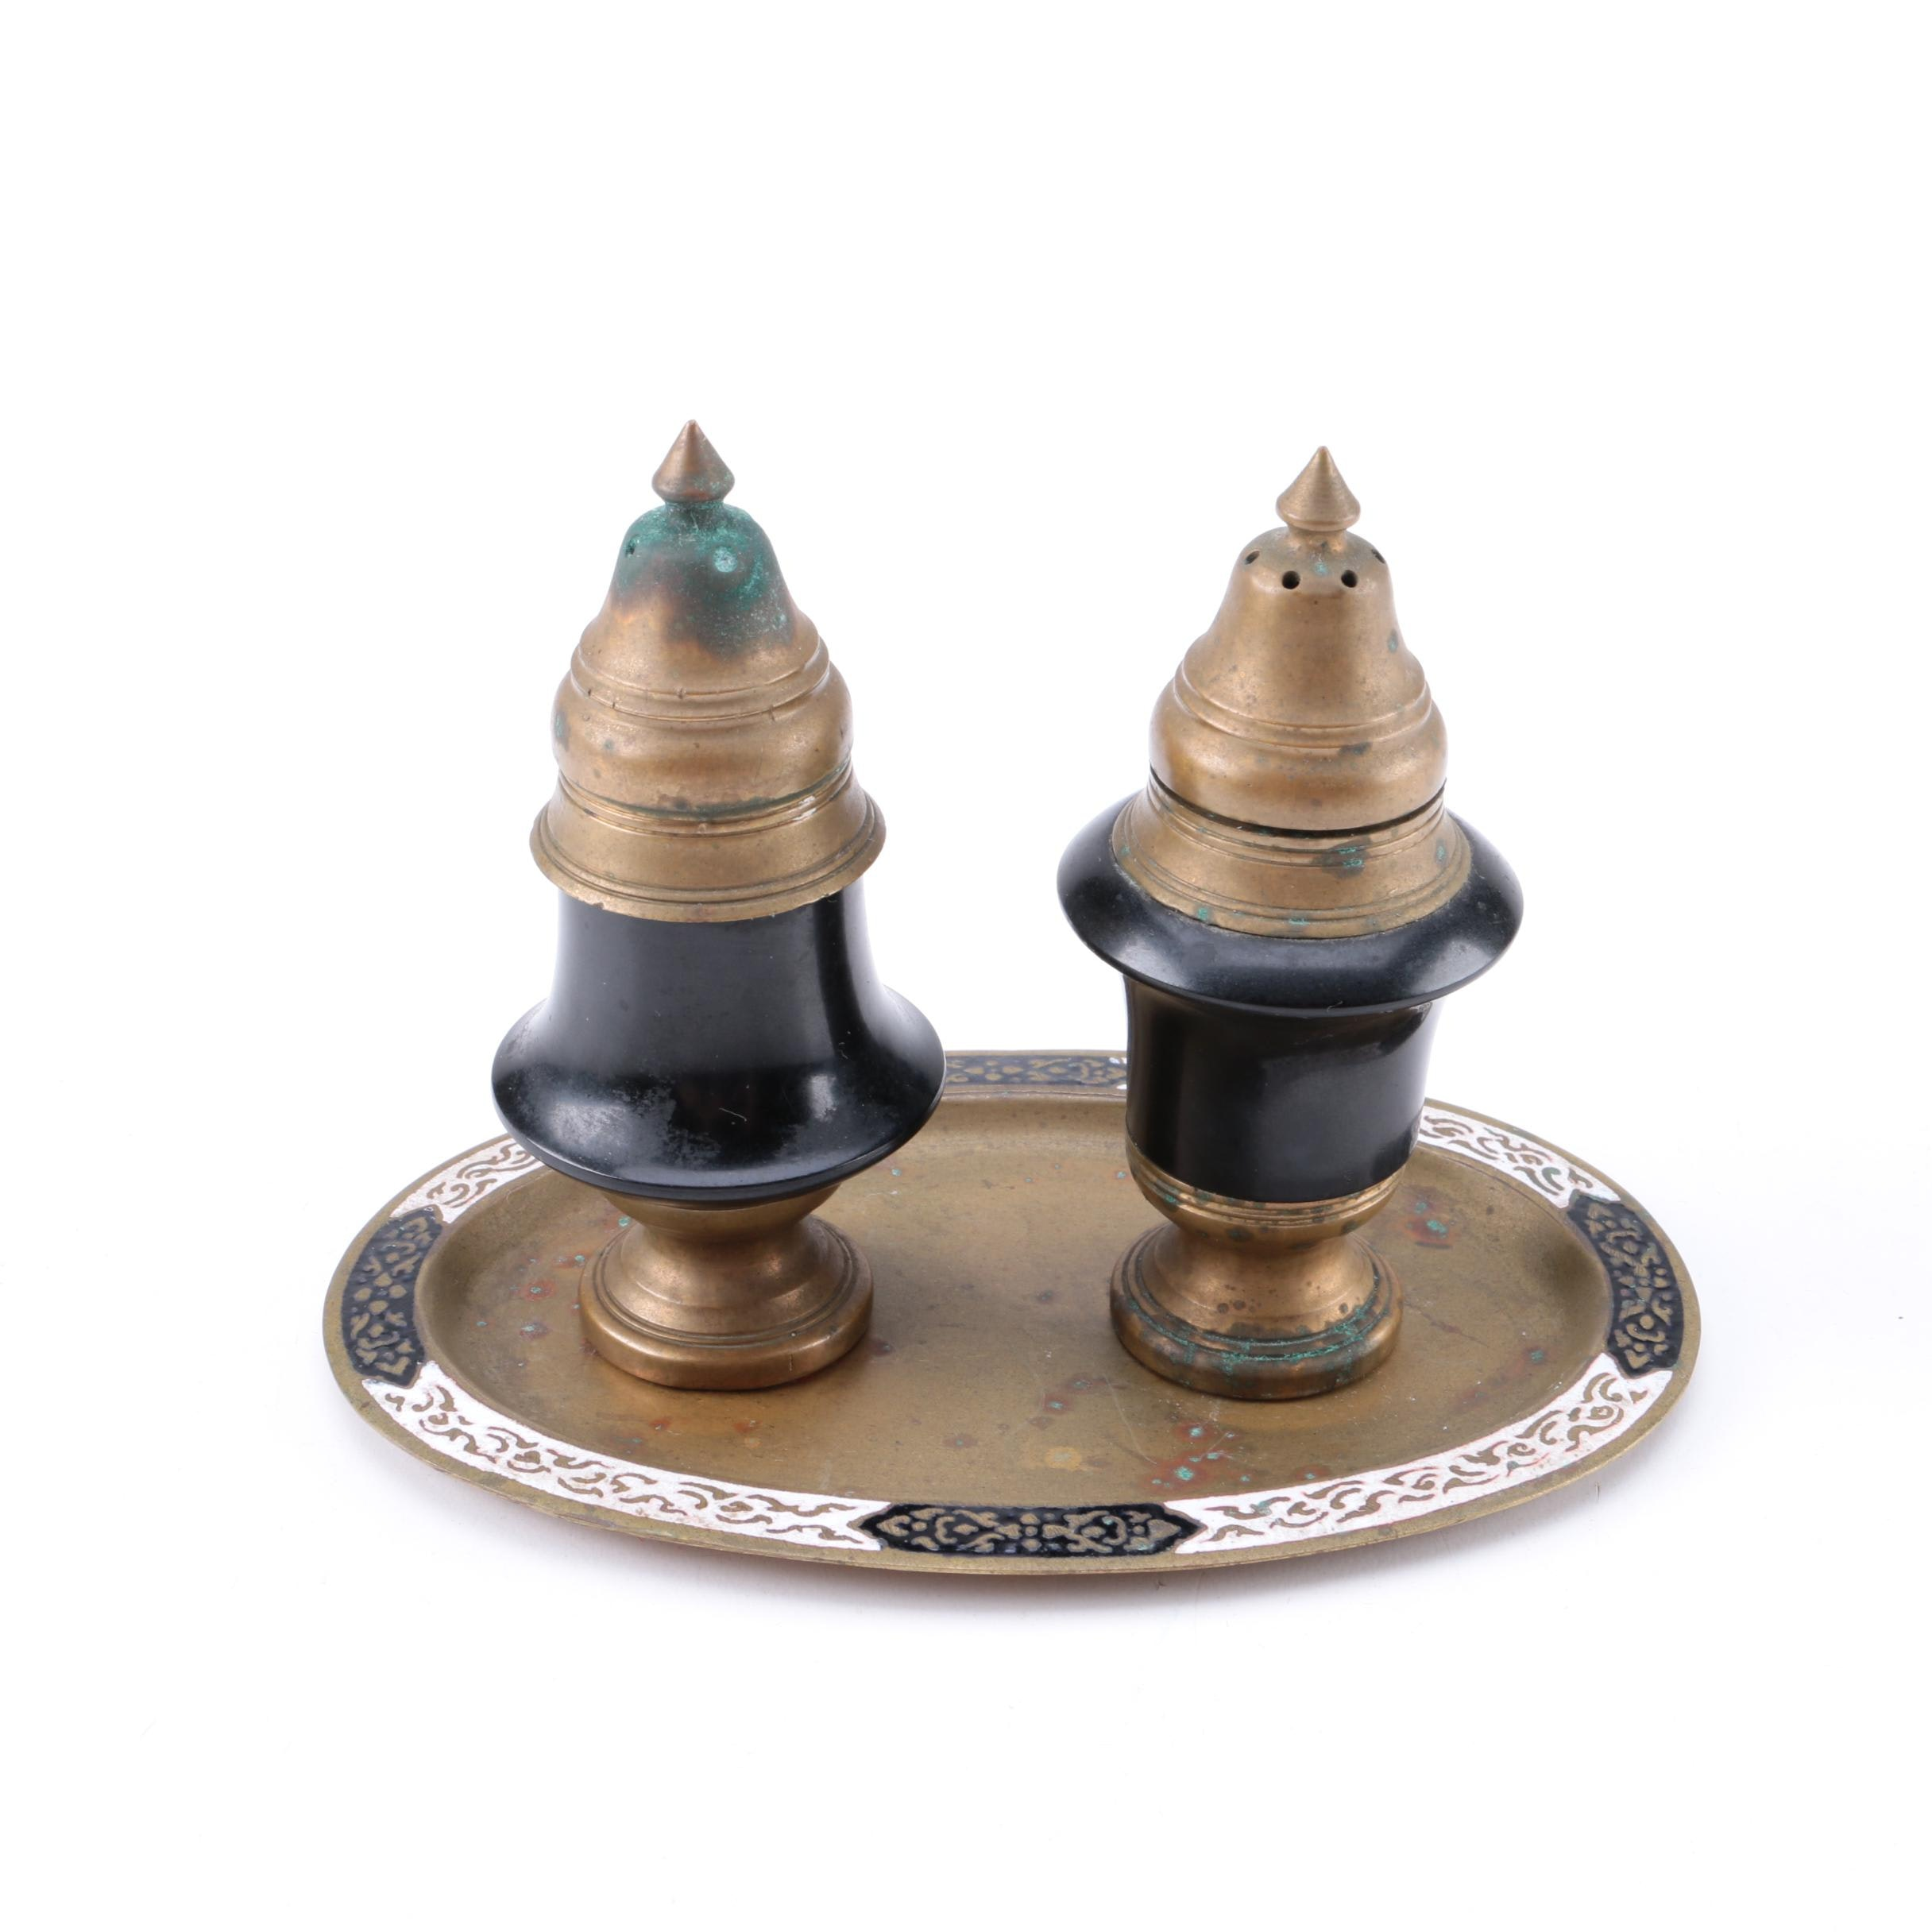 Brass Salt and Pepper Shakers with Tray